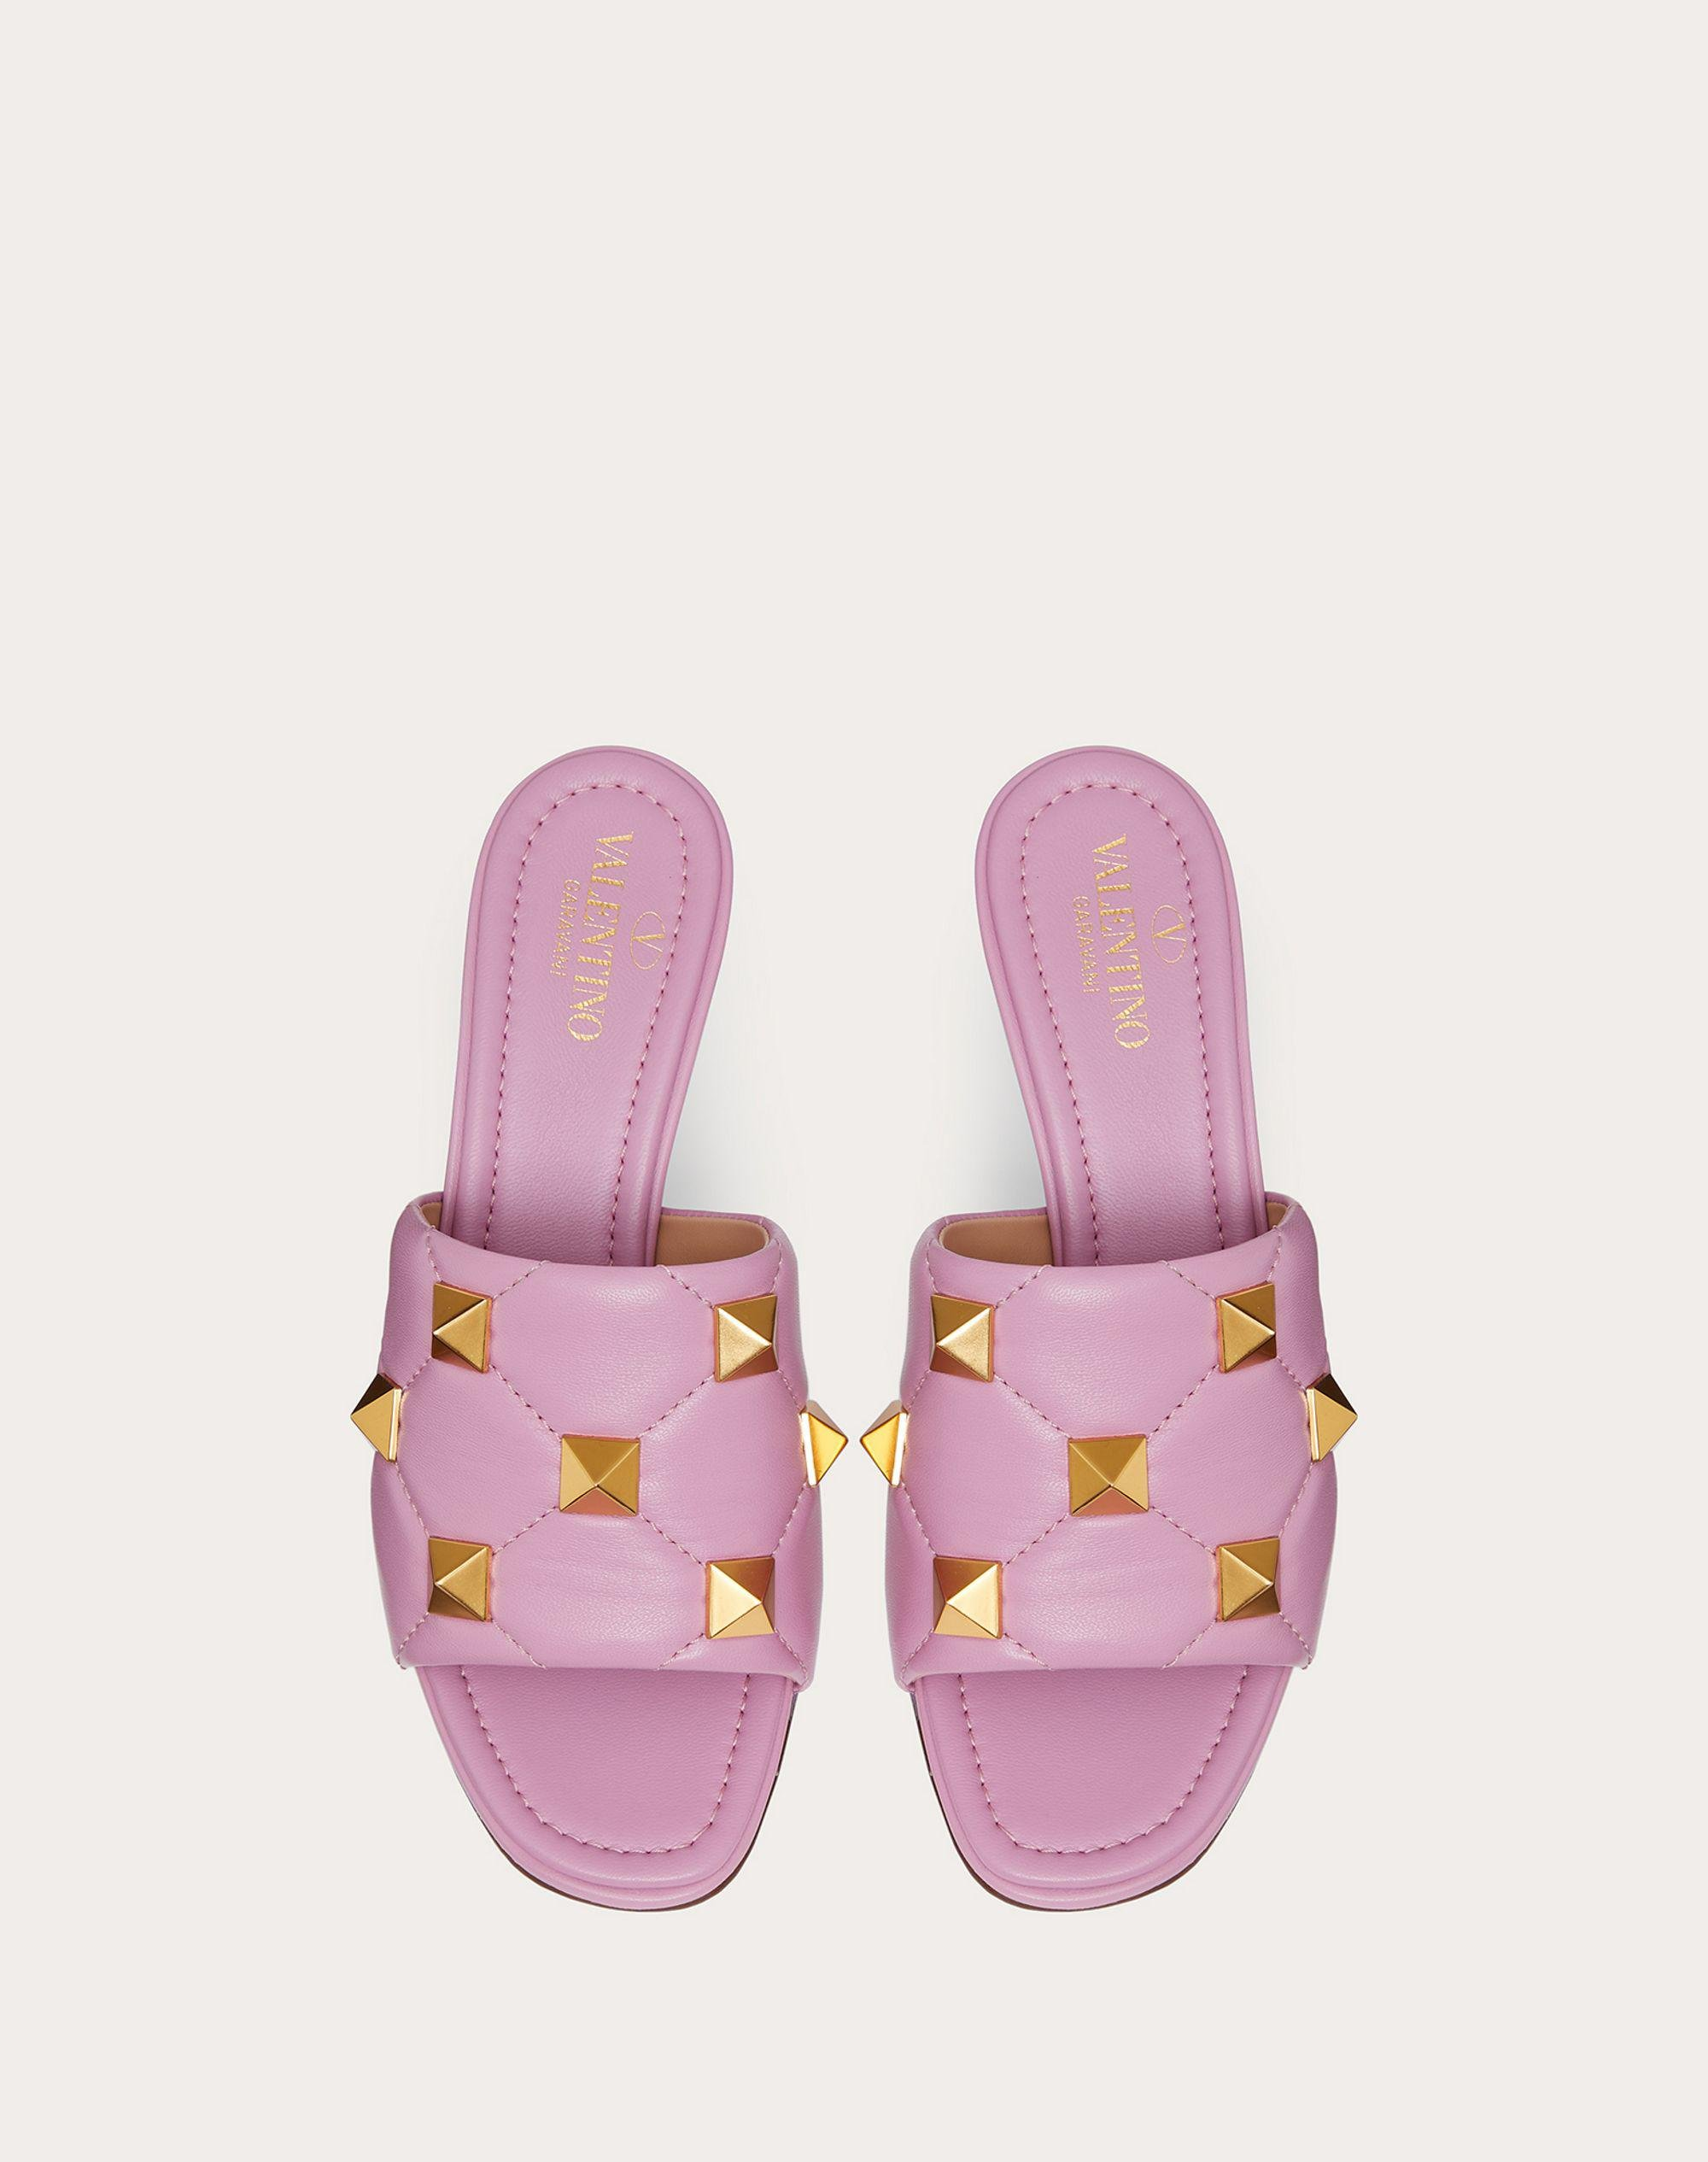 ROMAN STUD SLIDE SANDAL IN QUILTED NAPPA 65 MM 3